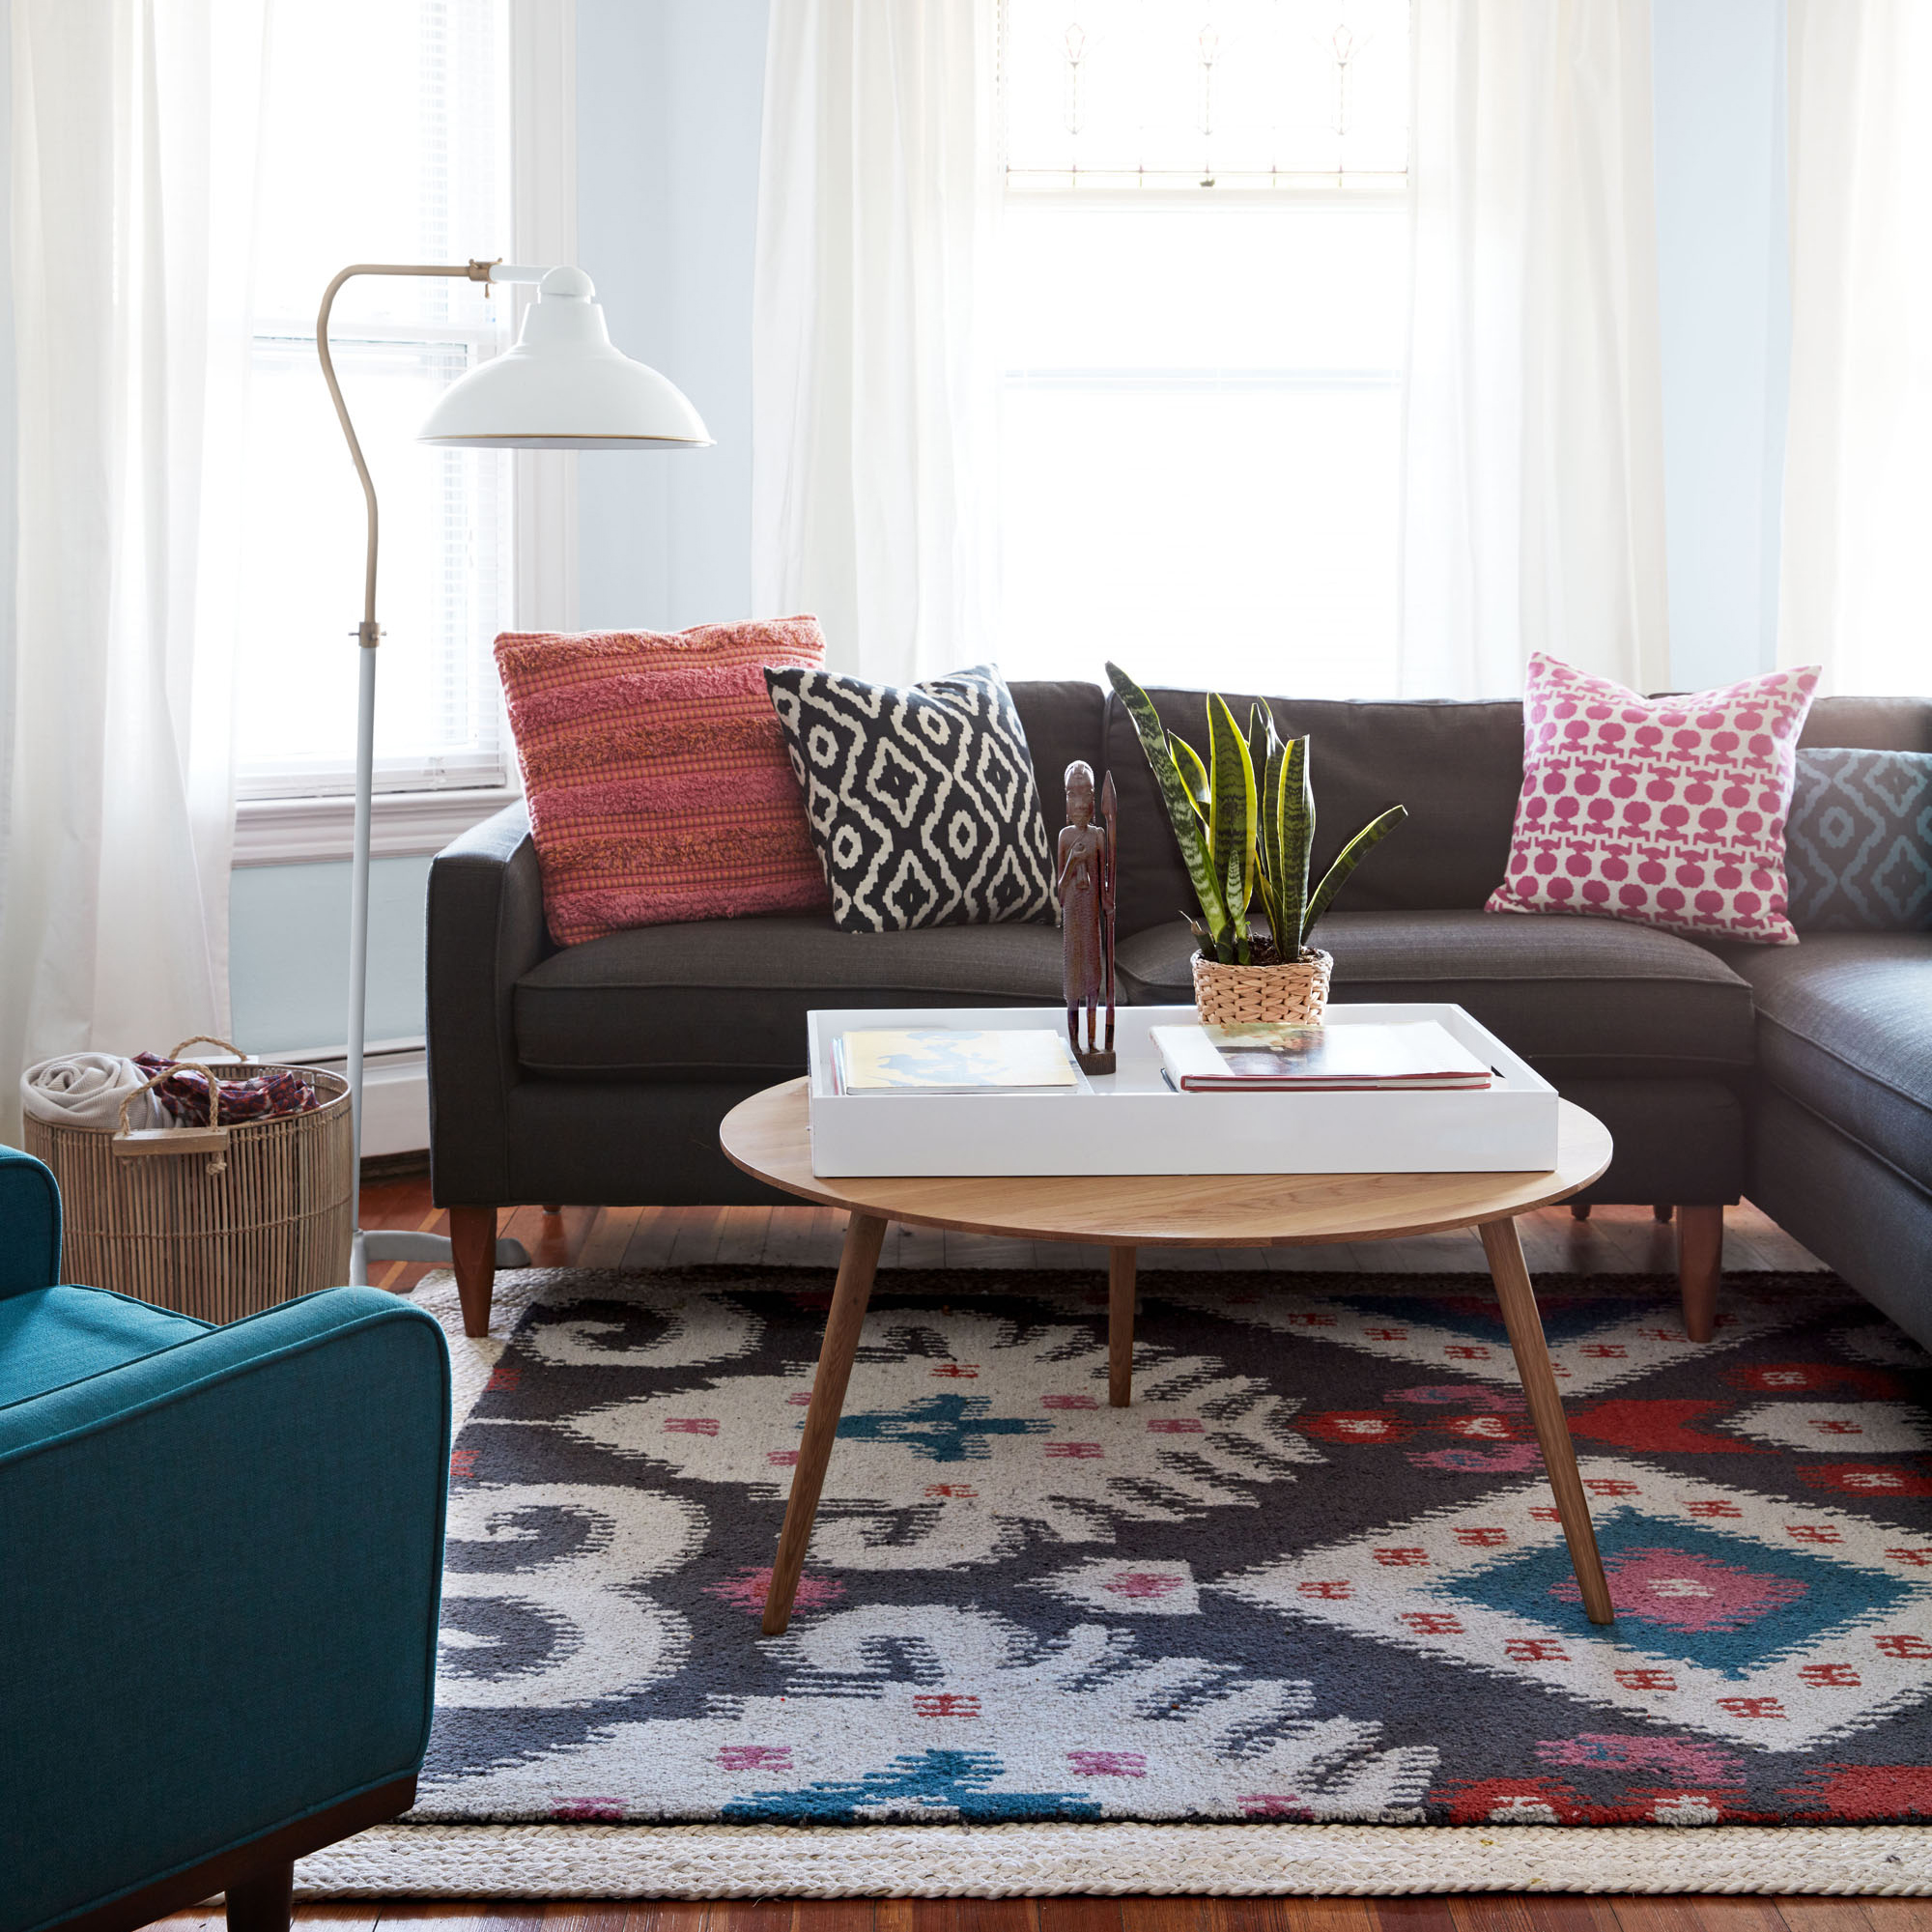 Living Room with Grey Couch and Teal Chair